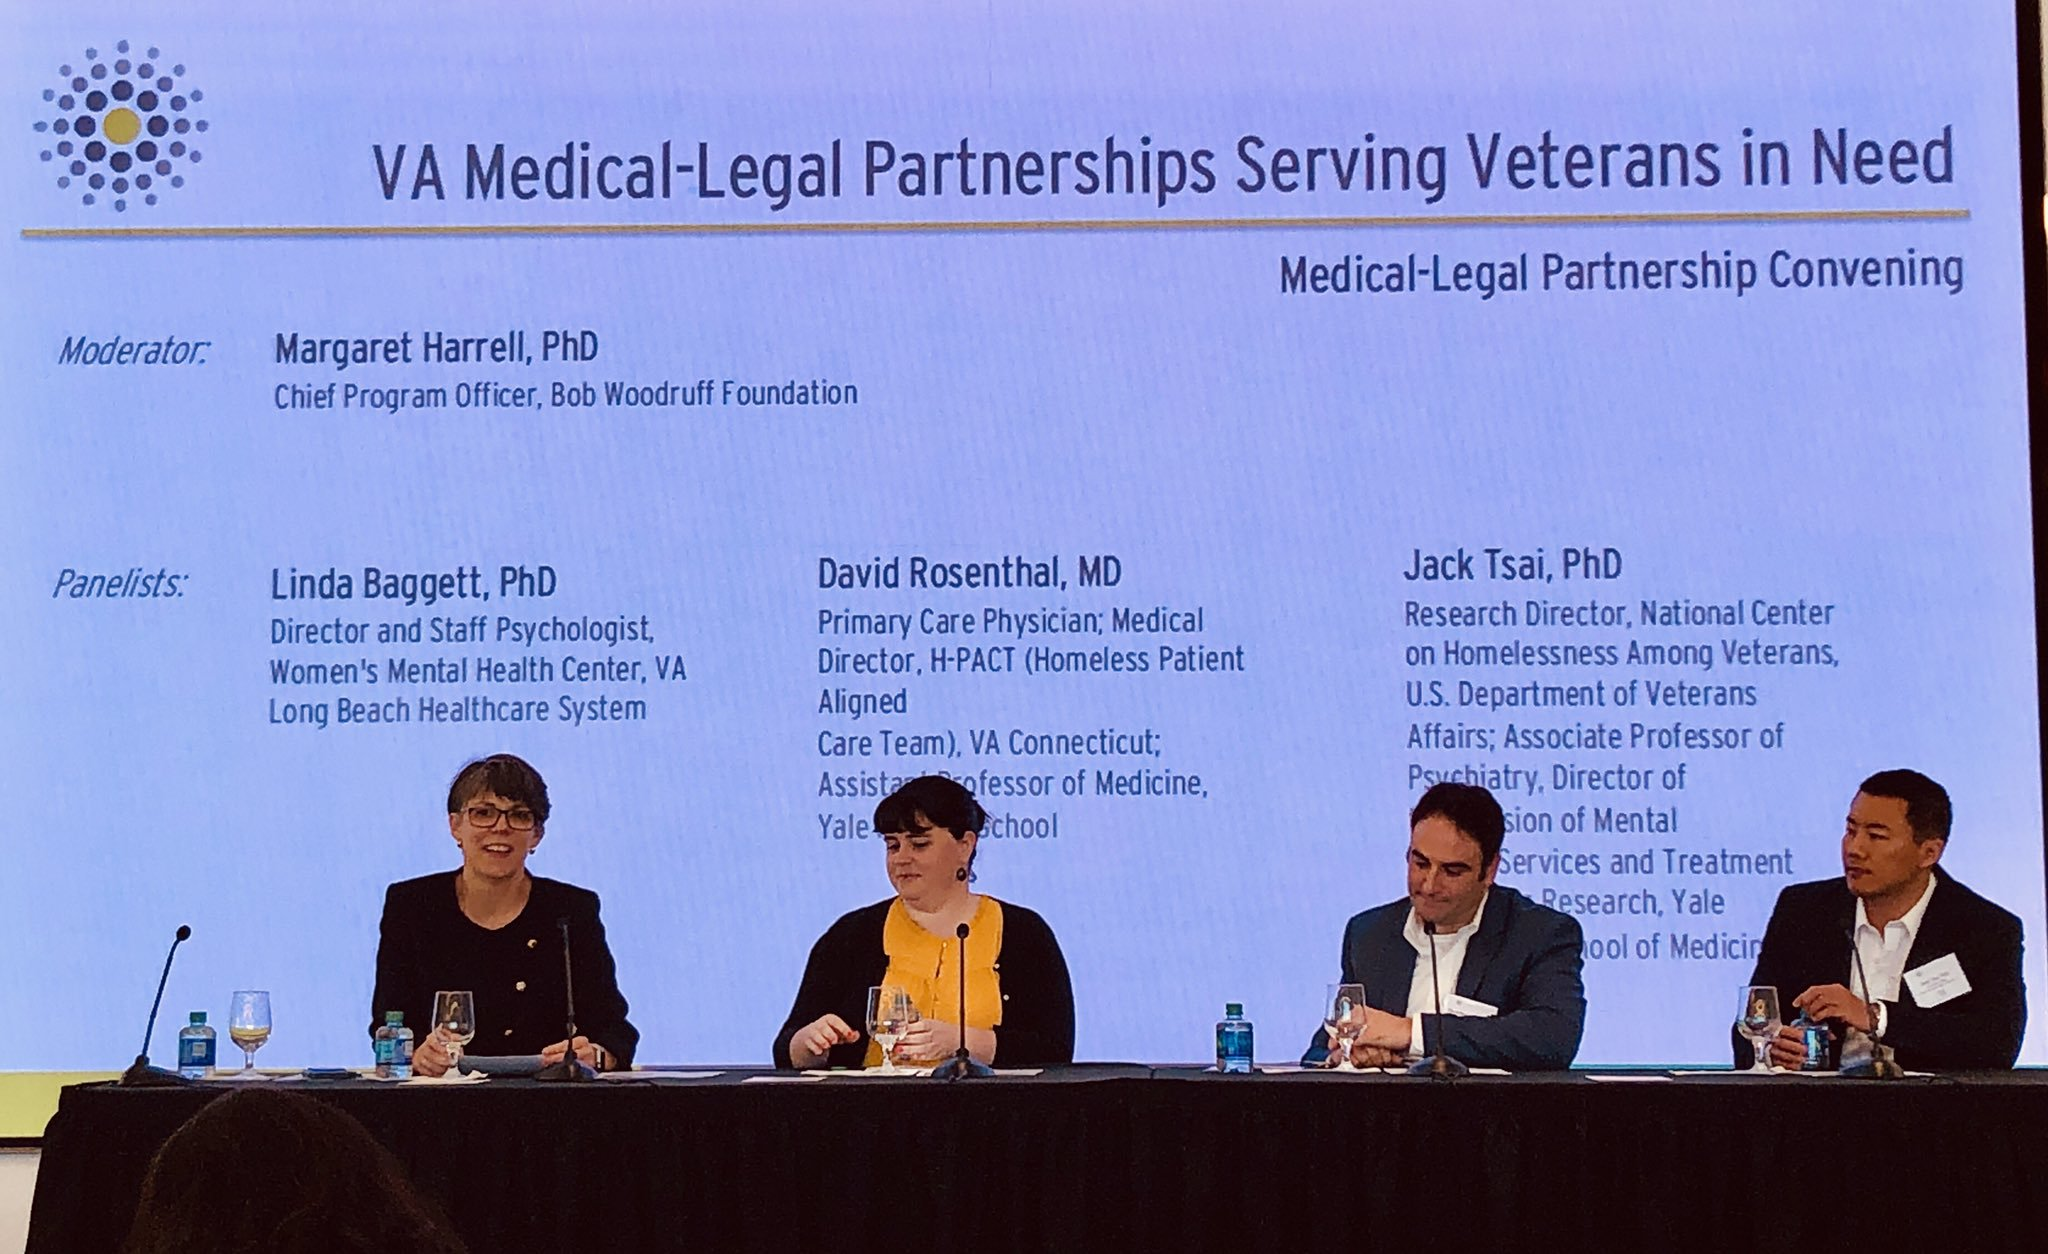 Bob Woodruff Foundation convened MLP meeting + New resources for Veteran-based programs